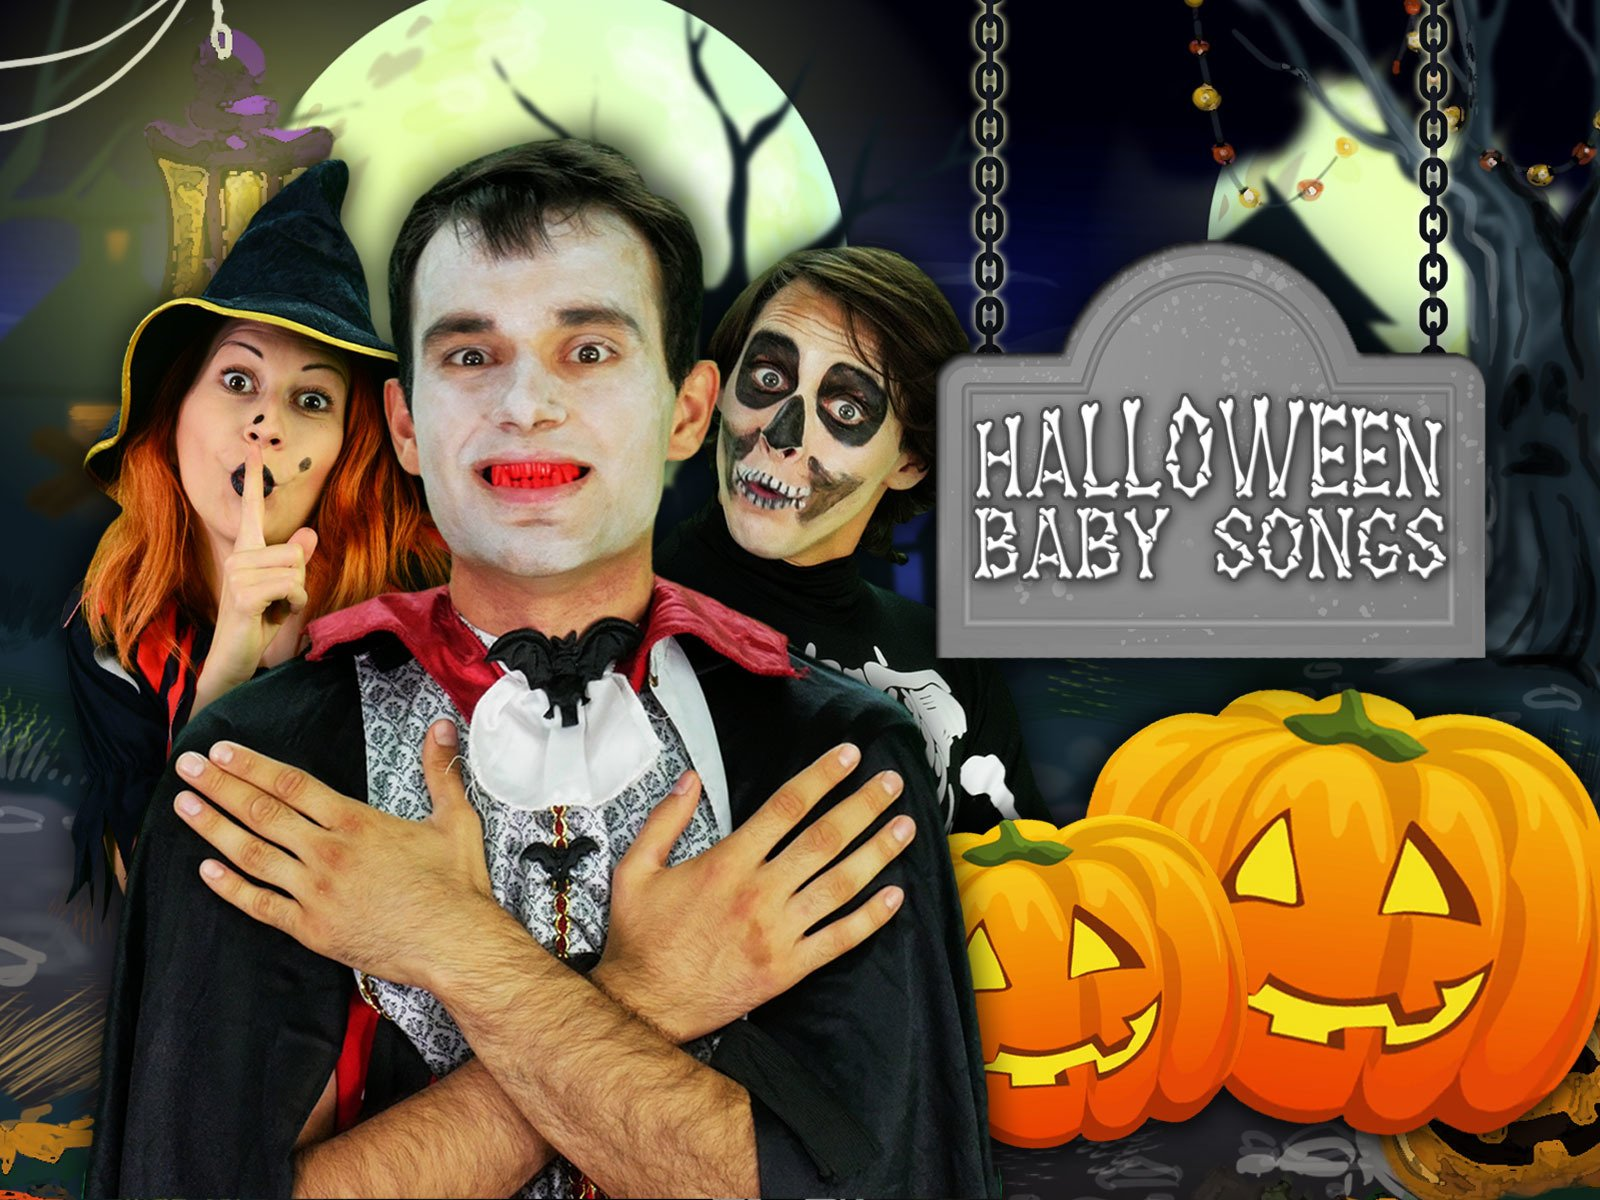 Halloween Baby Songs - Season 1